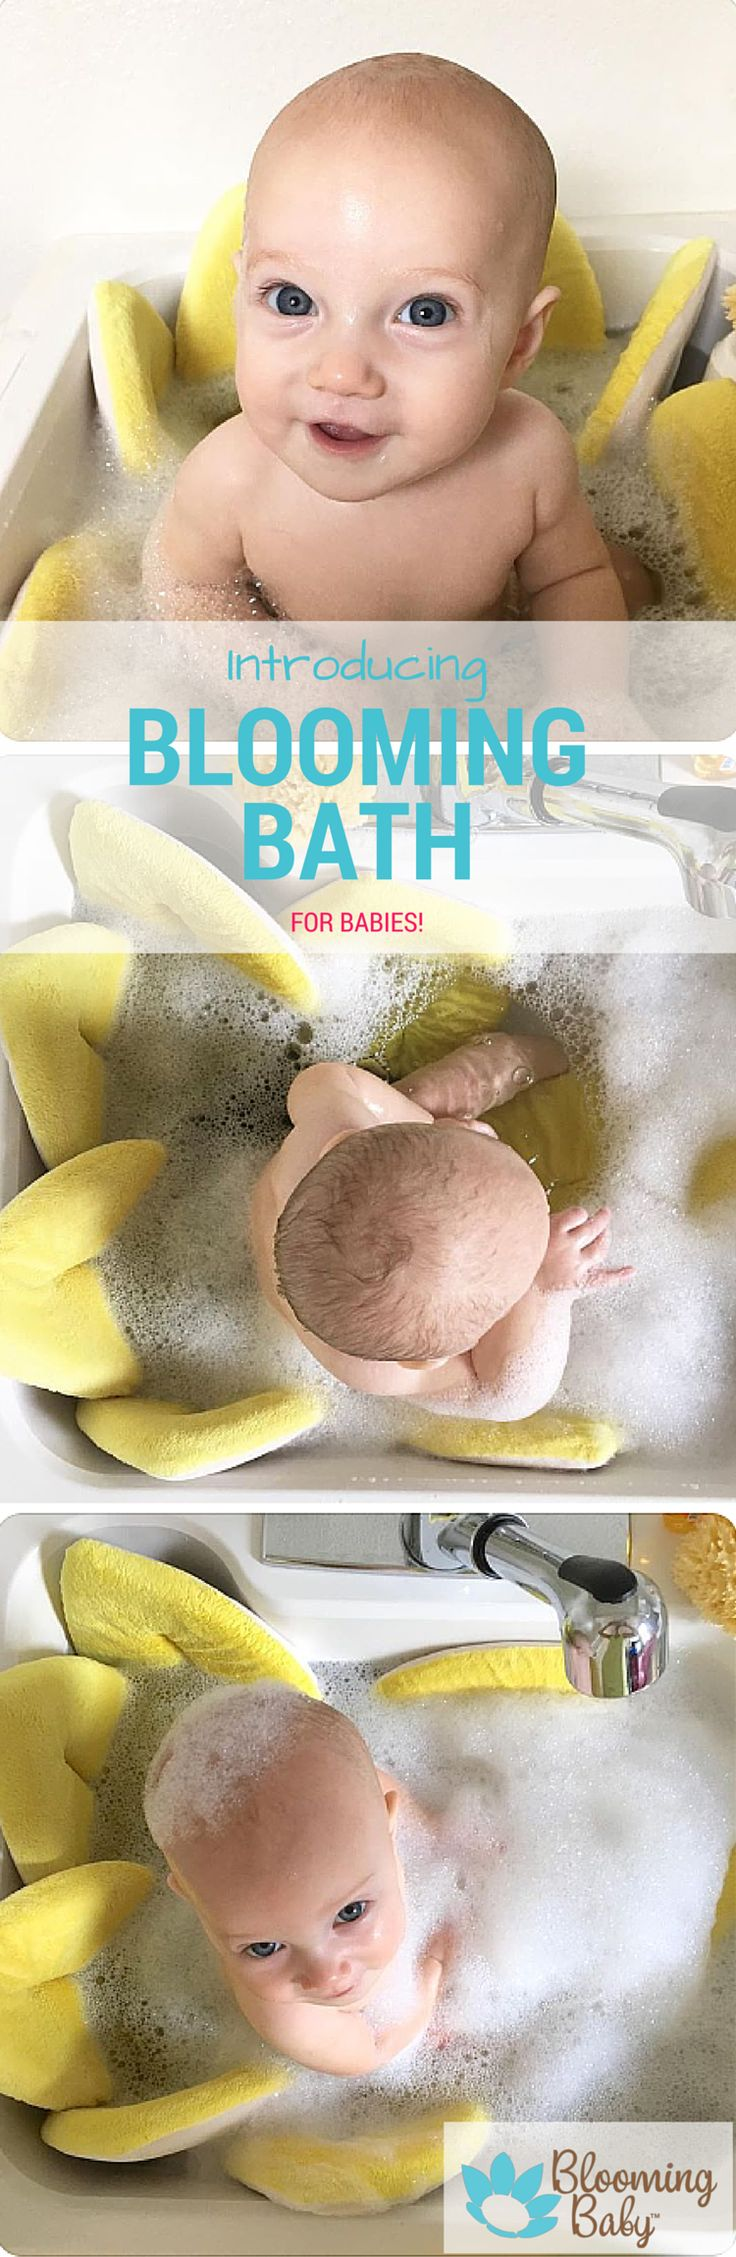 The Blooming Bath is a soft, plush flower shaped baby bath. Simply put it in your bathroom or kitchen sink and get ready to enjoy bath time!